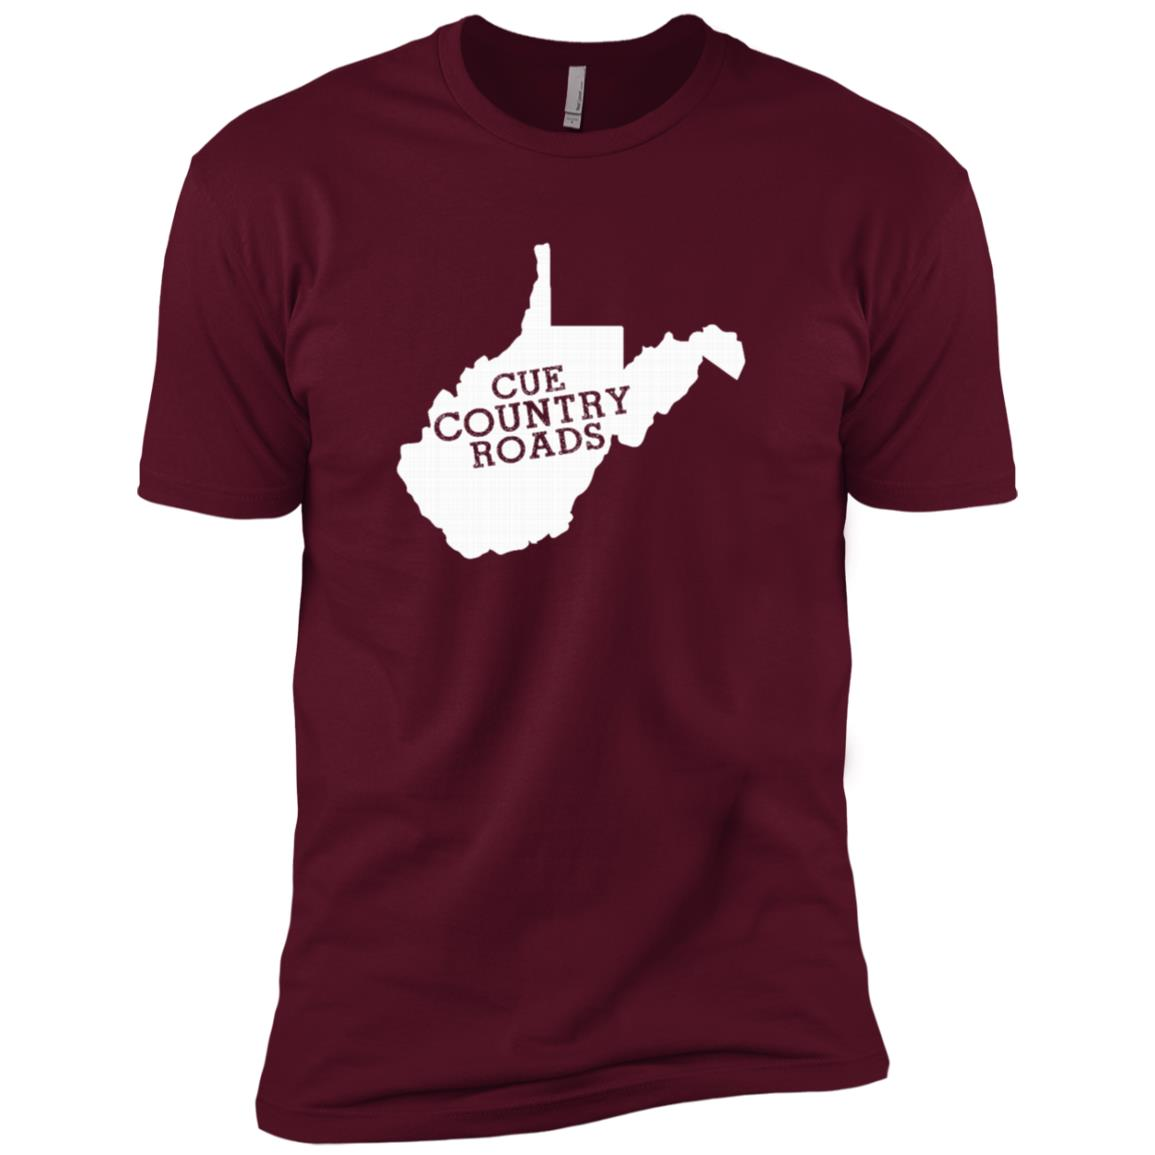 Cue Country Roads for Men Short Sleeve T-Shirt